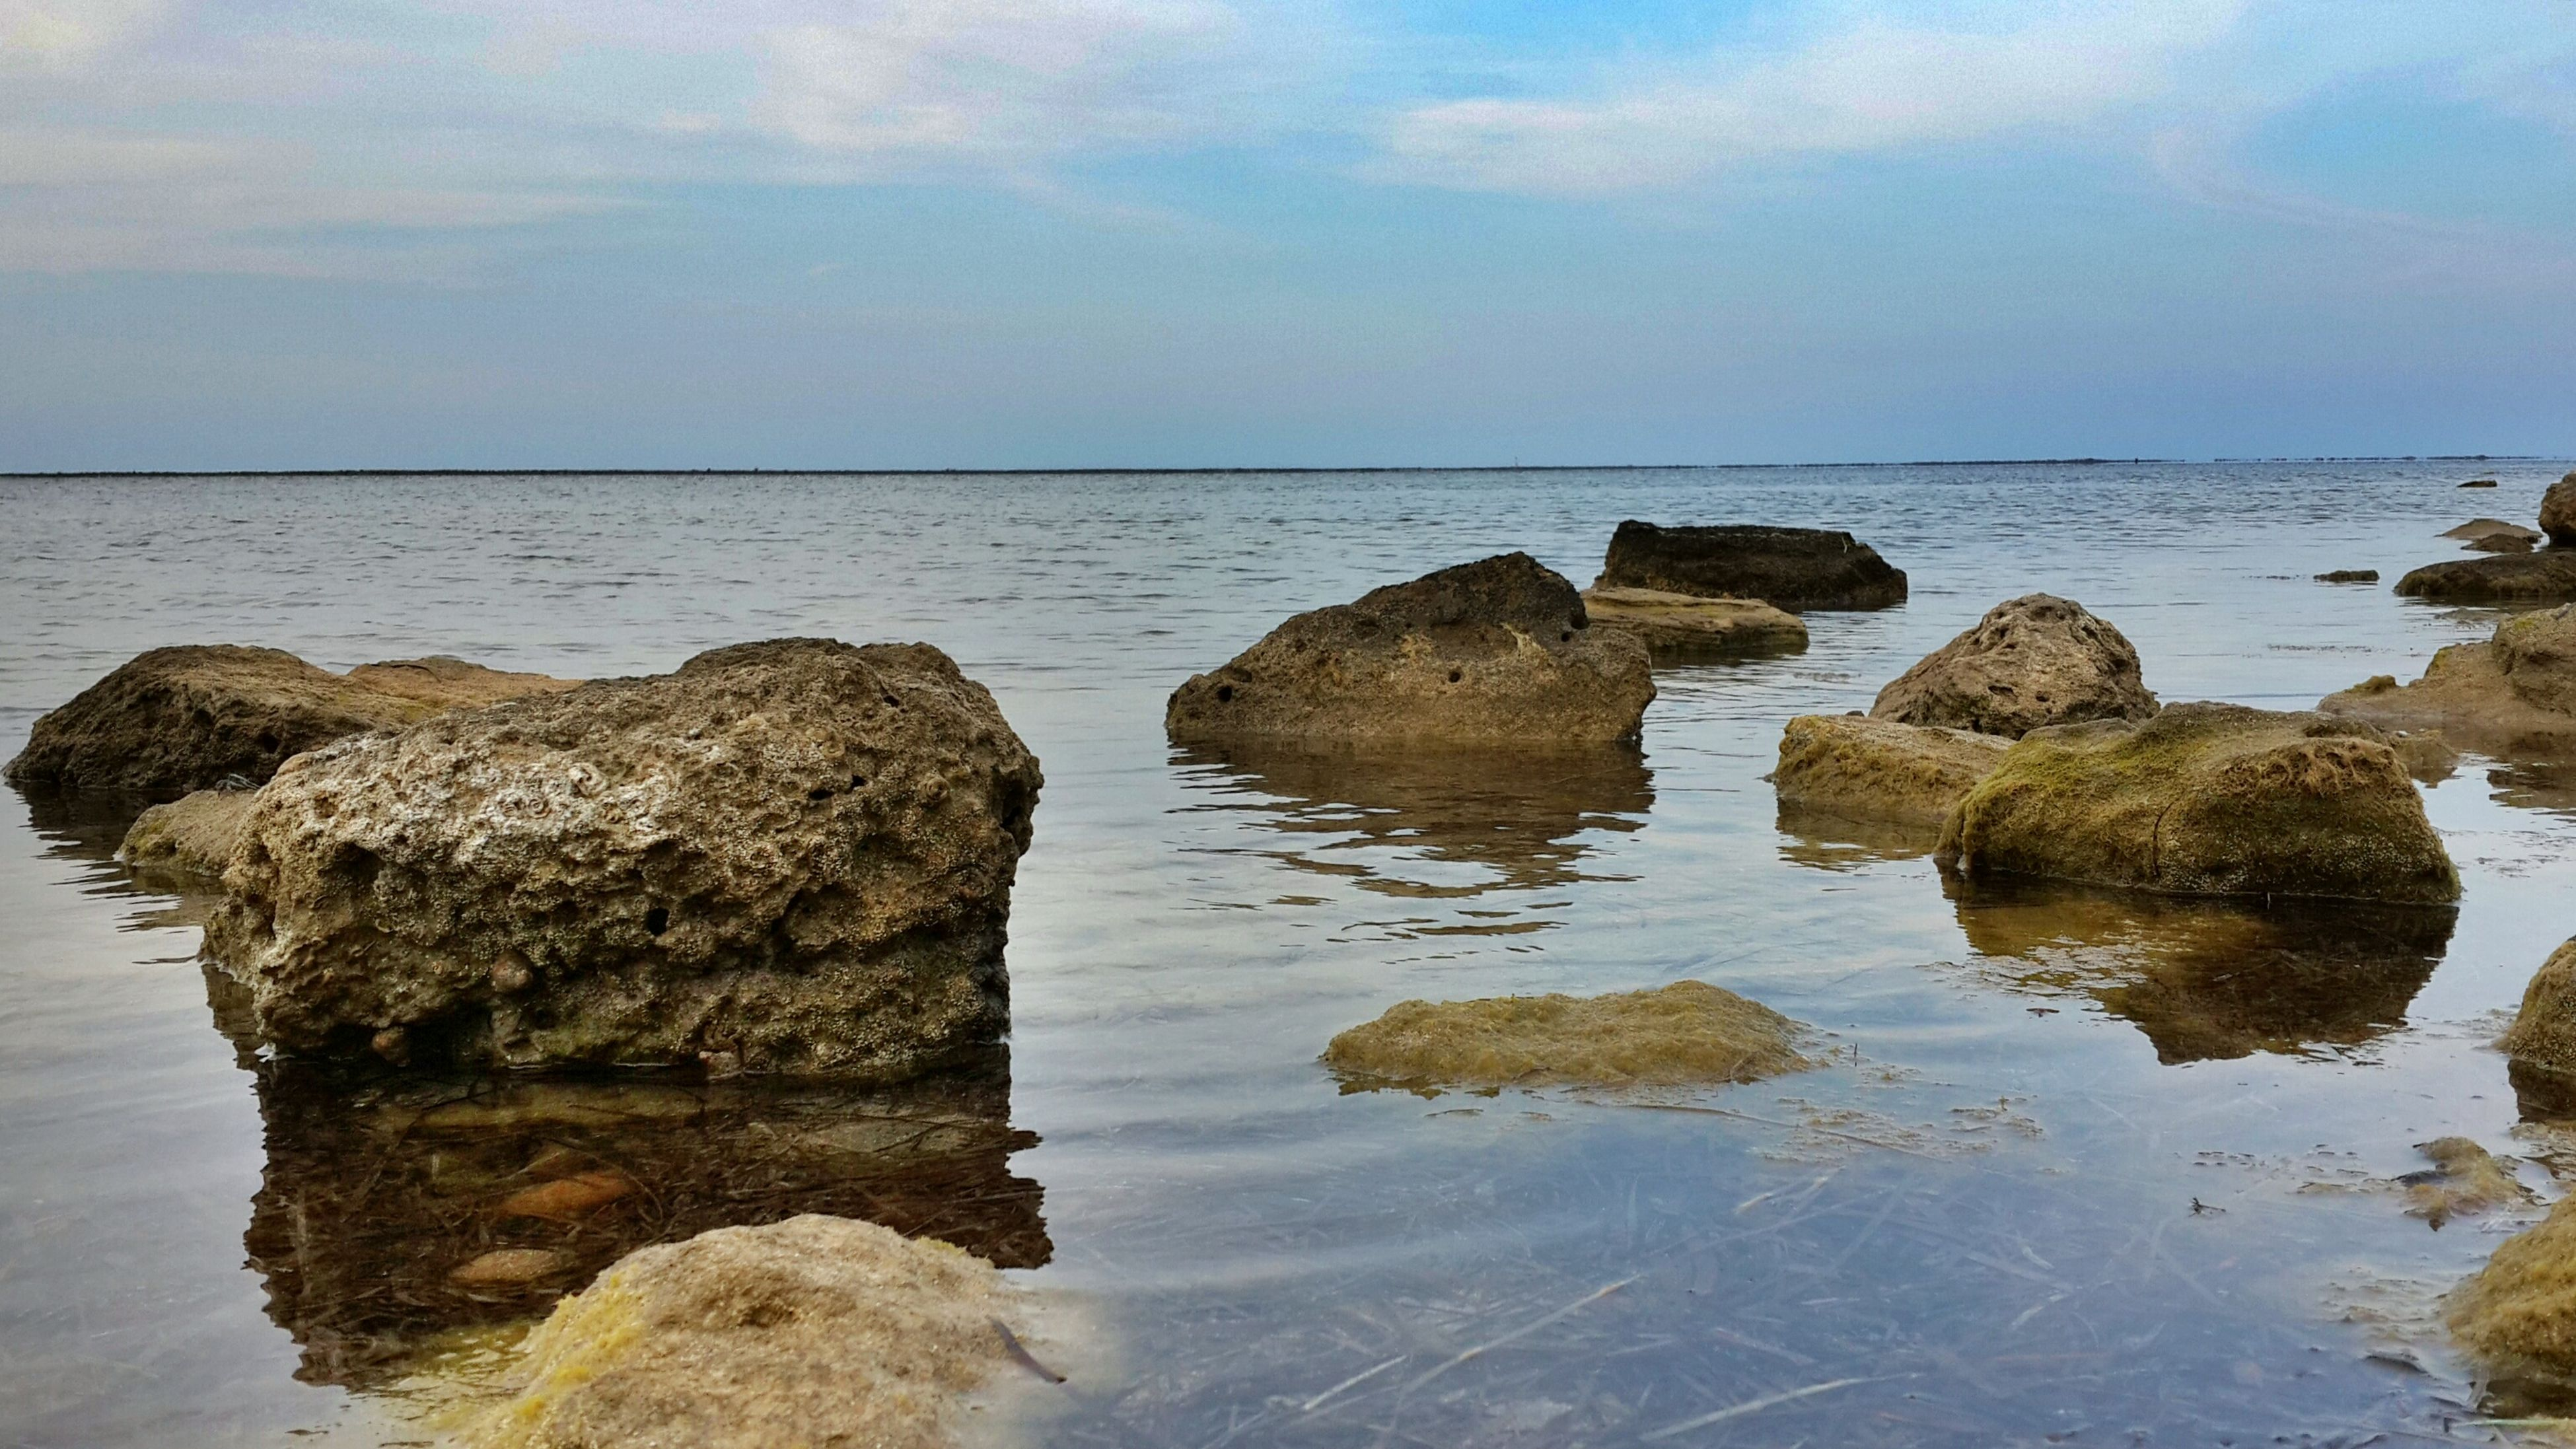 water, sea, horizon over water, tranquility, tranquil scene, sky, scenics, rock - object, beauty in nature, rock formation, nature, reflection, idyllic, rock, cloud - sky, cloud, waterfront, beach, shore, calm